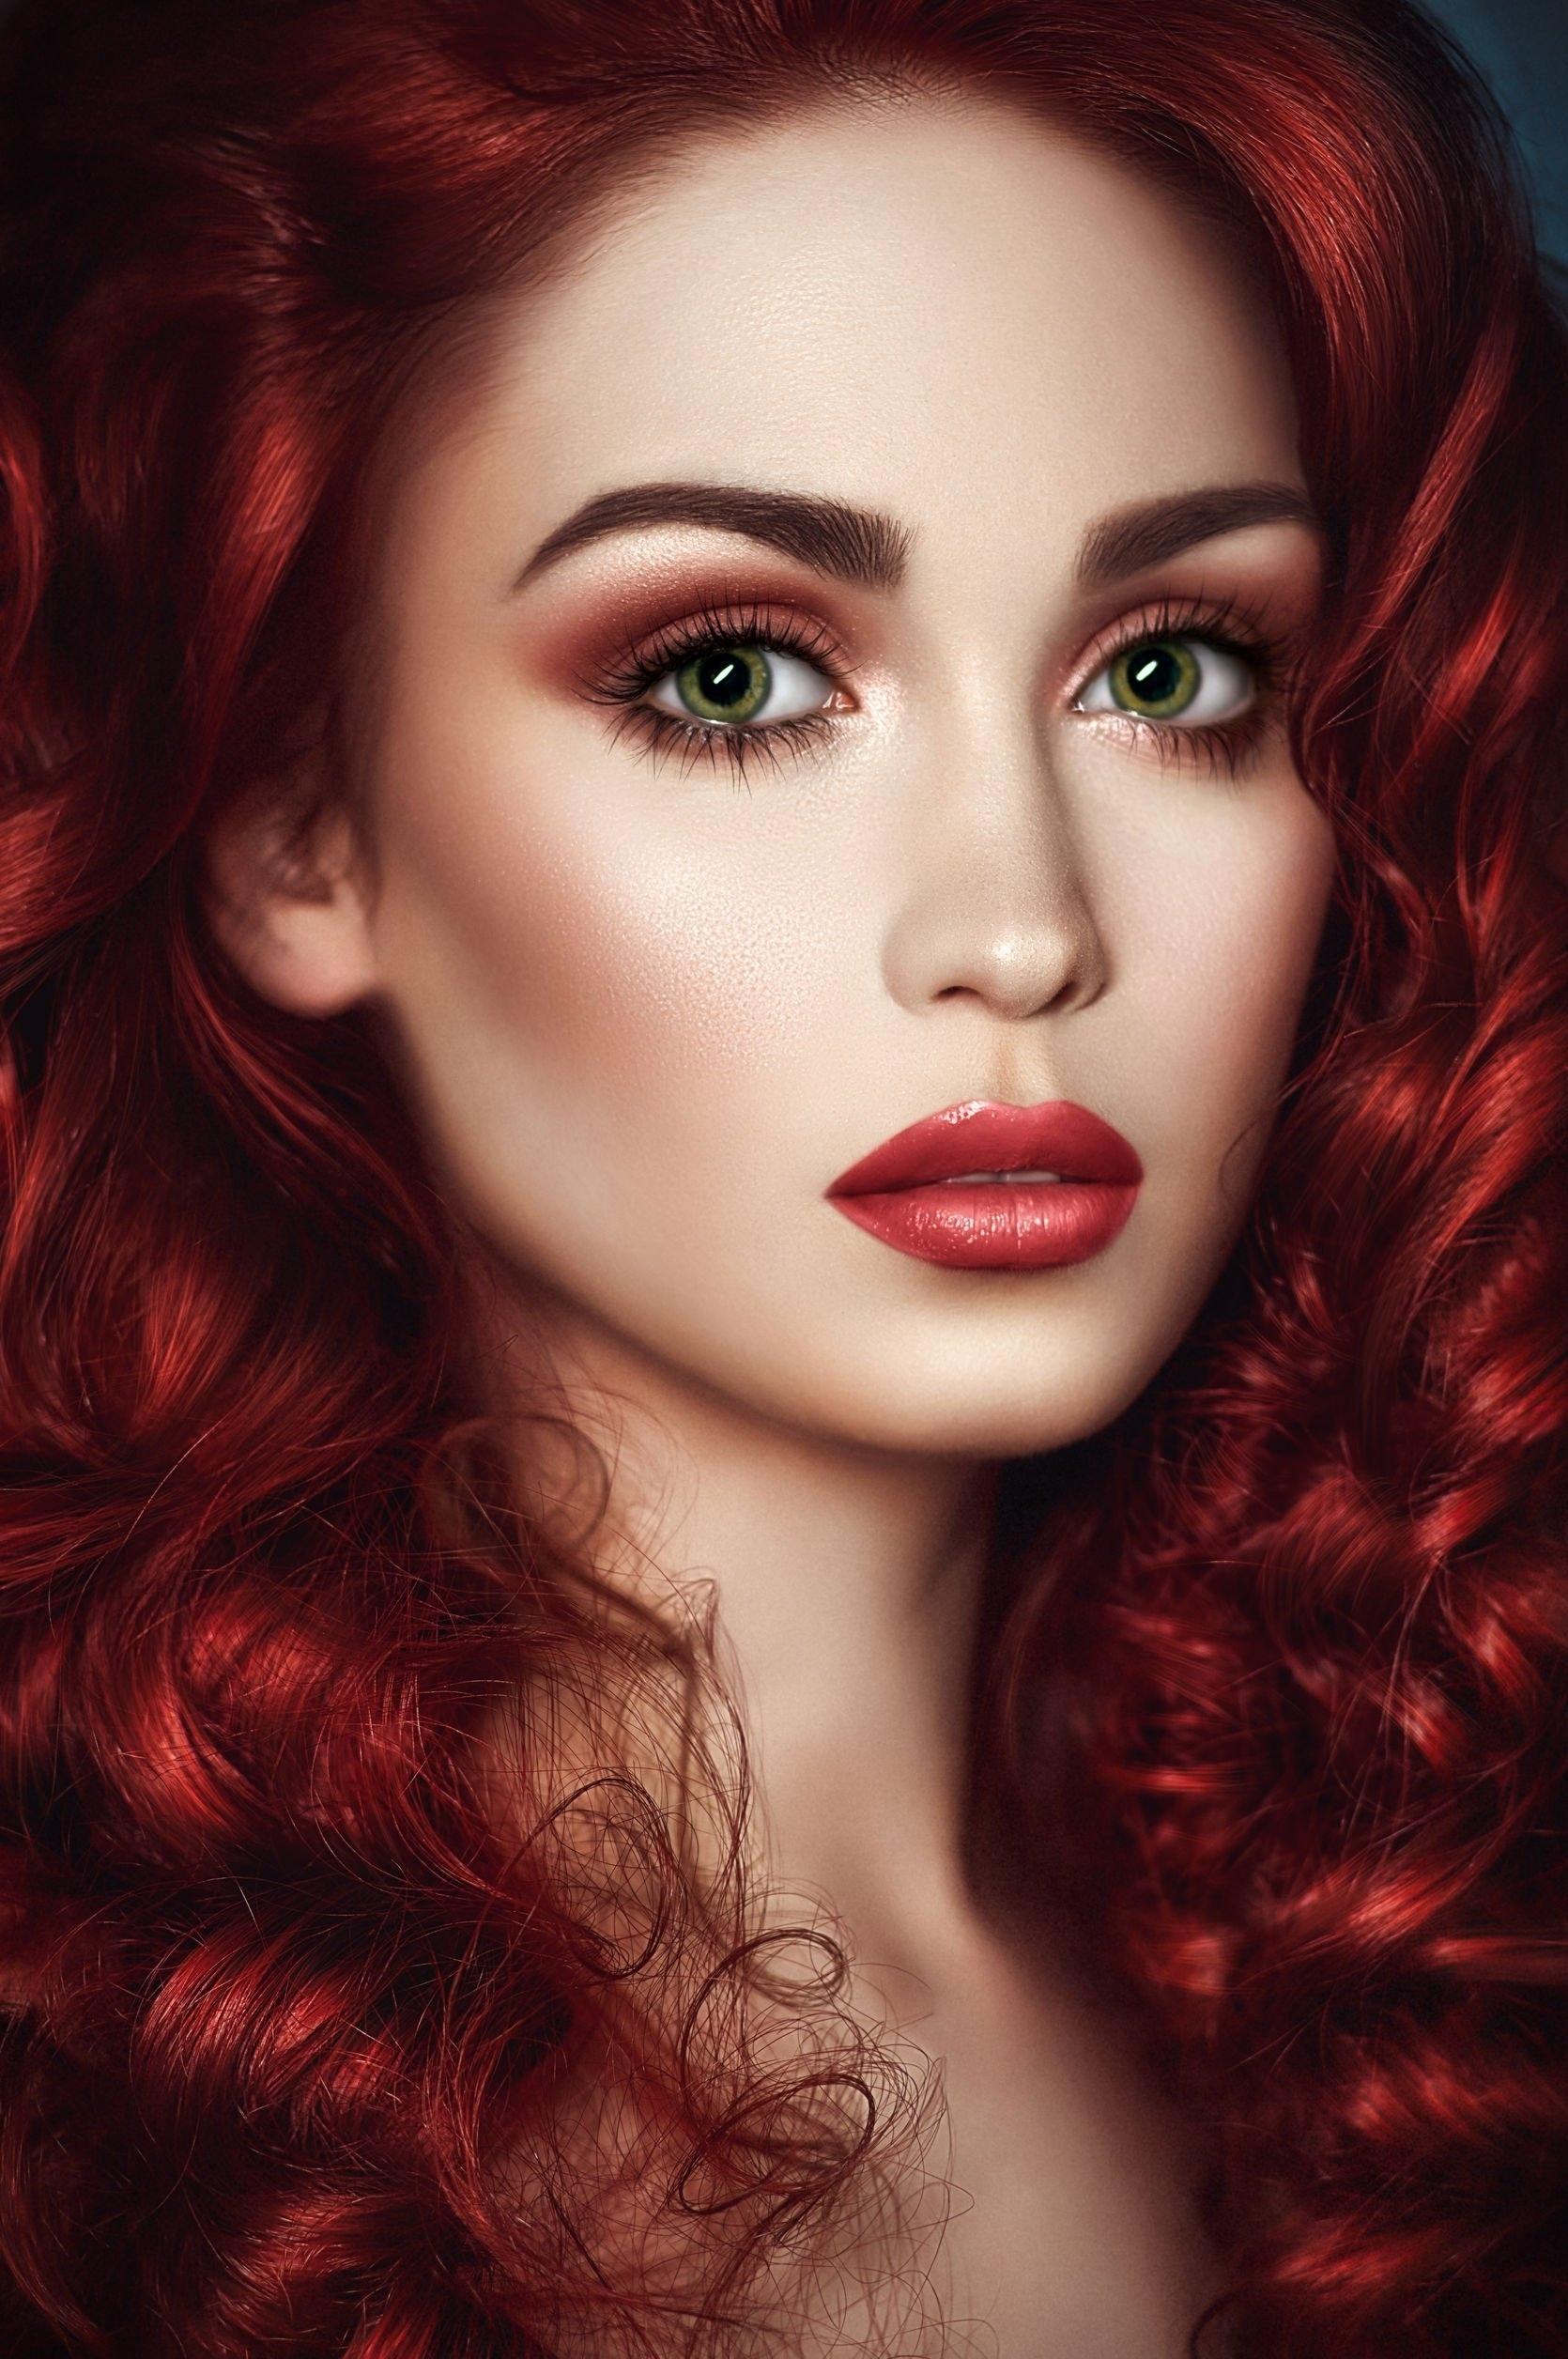 Dark Red Hair Green Eyes Makeup | Saubhaya Makeup in What Colour Eyeshadow For Green Eyes And Red Hair